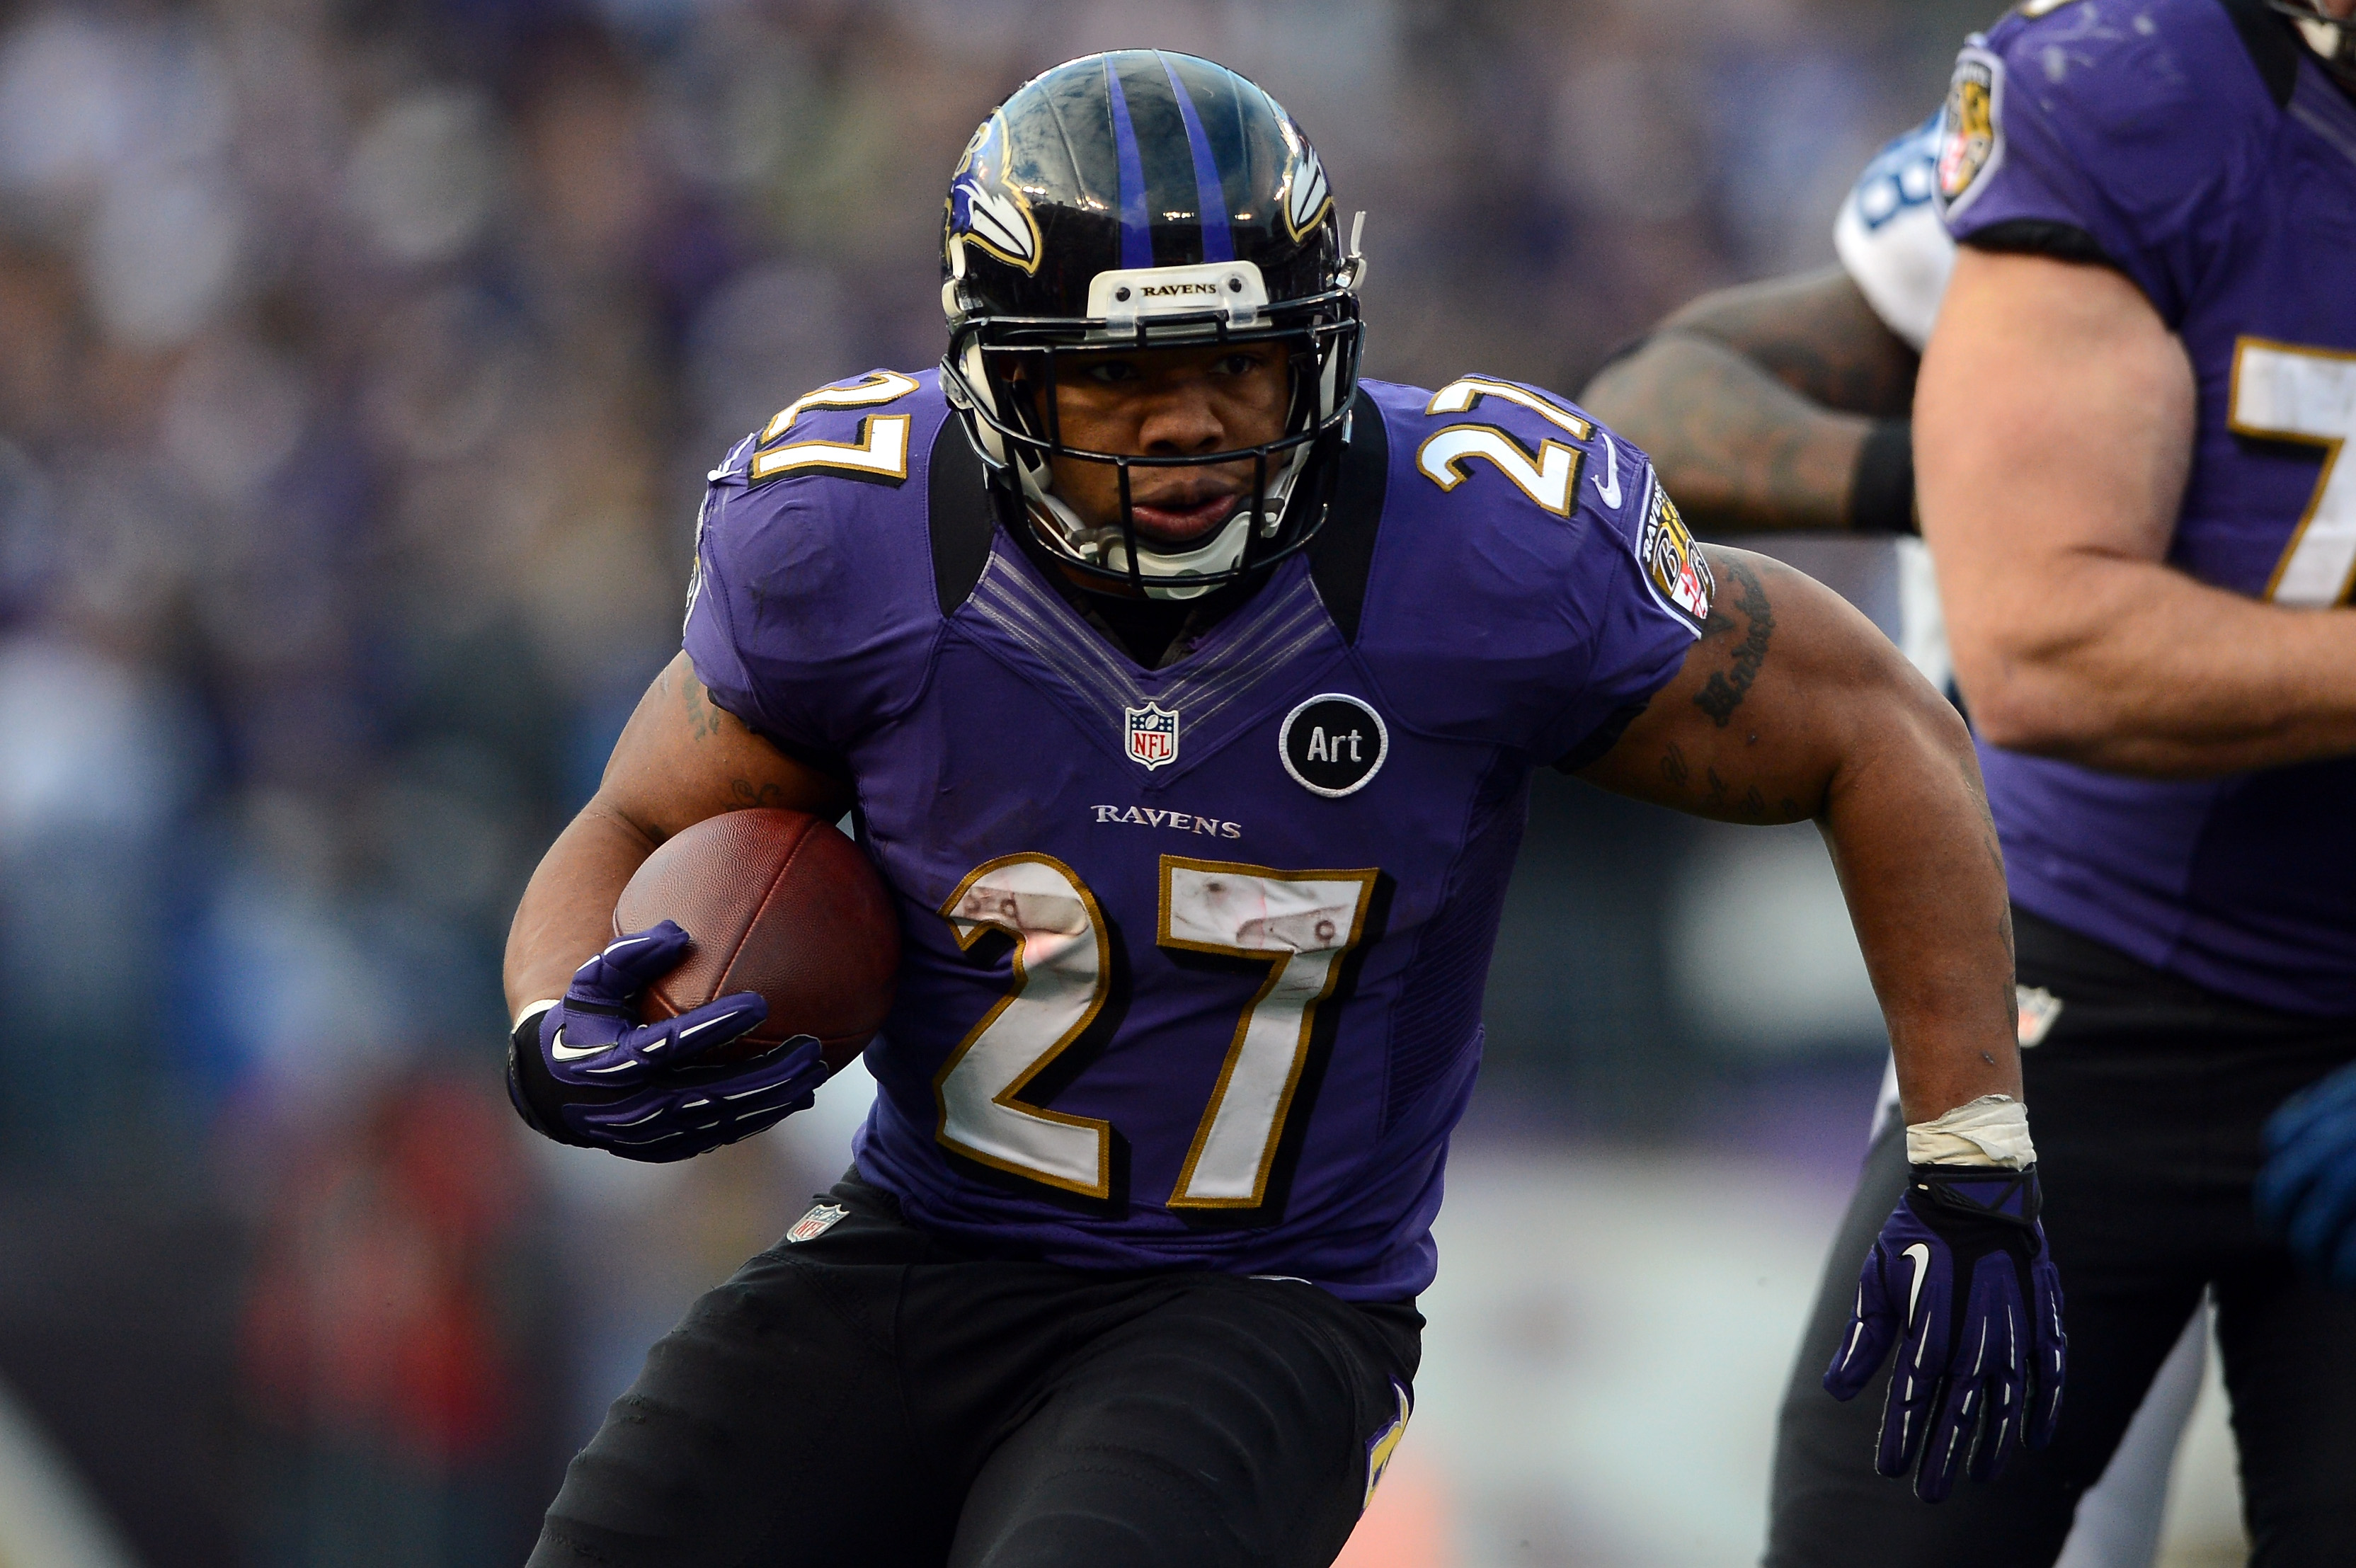 Ray Rice #27 of the Baltimore Ravens runs the ball during the AFC Wild Card Playoff Game on January 6, 2013 in Baltimore, Maryland.